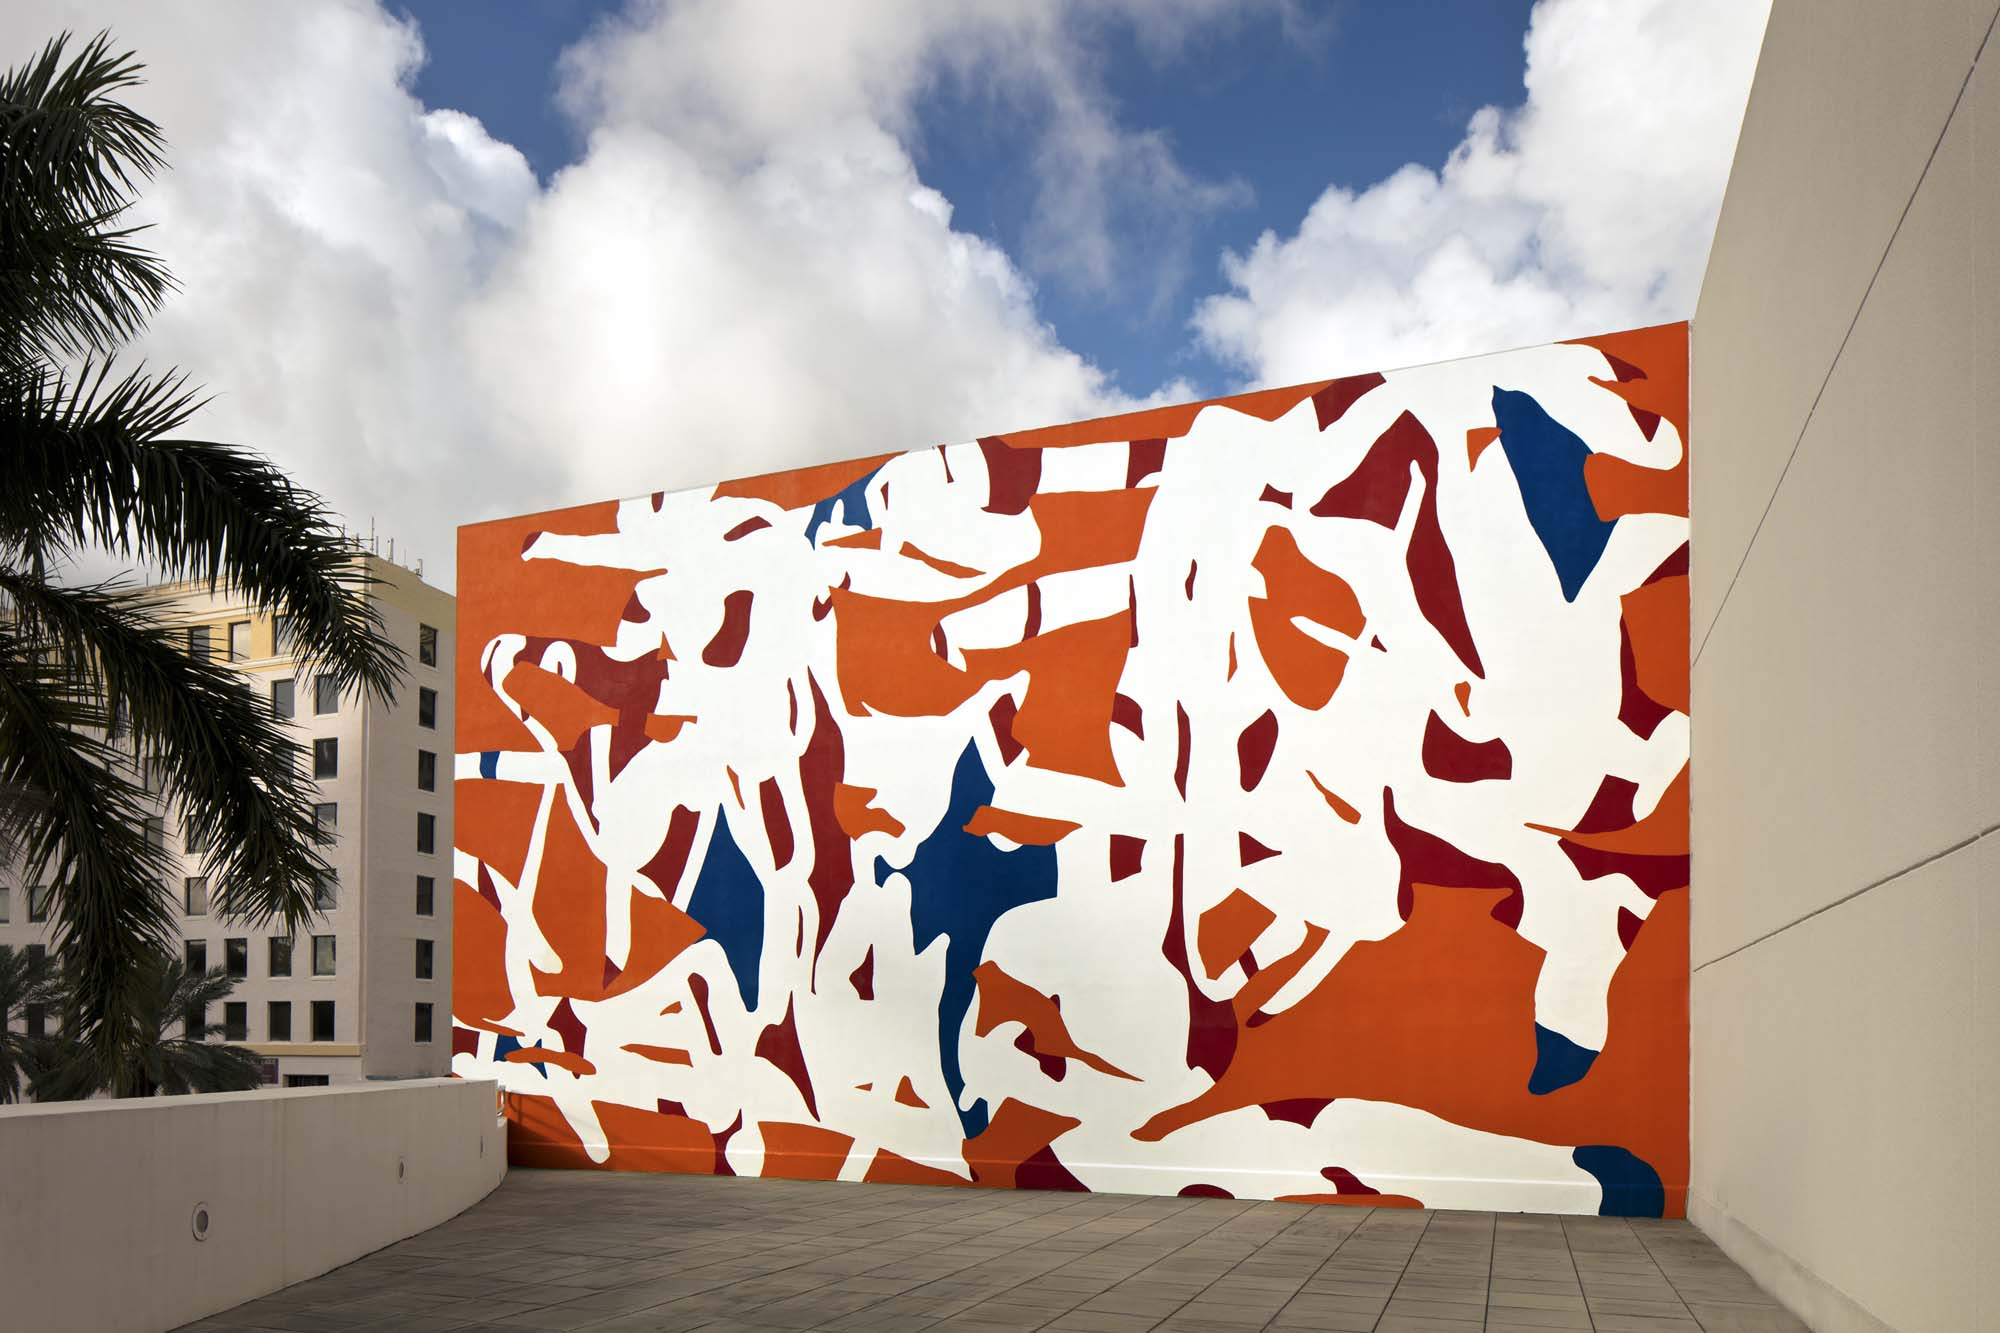 Arturo Herrera, Band, 2011, wall painting commissioned by NSU Art Museum Fort Lauderdale, gift of Tina and Carlo Bilotti, by exchange. Located on the Peck Terrace.